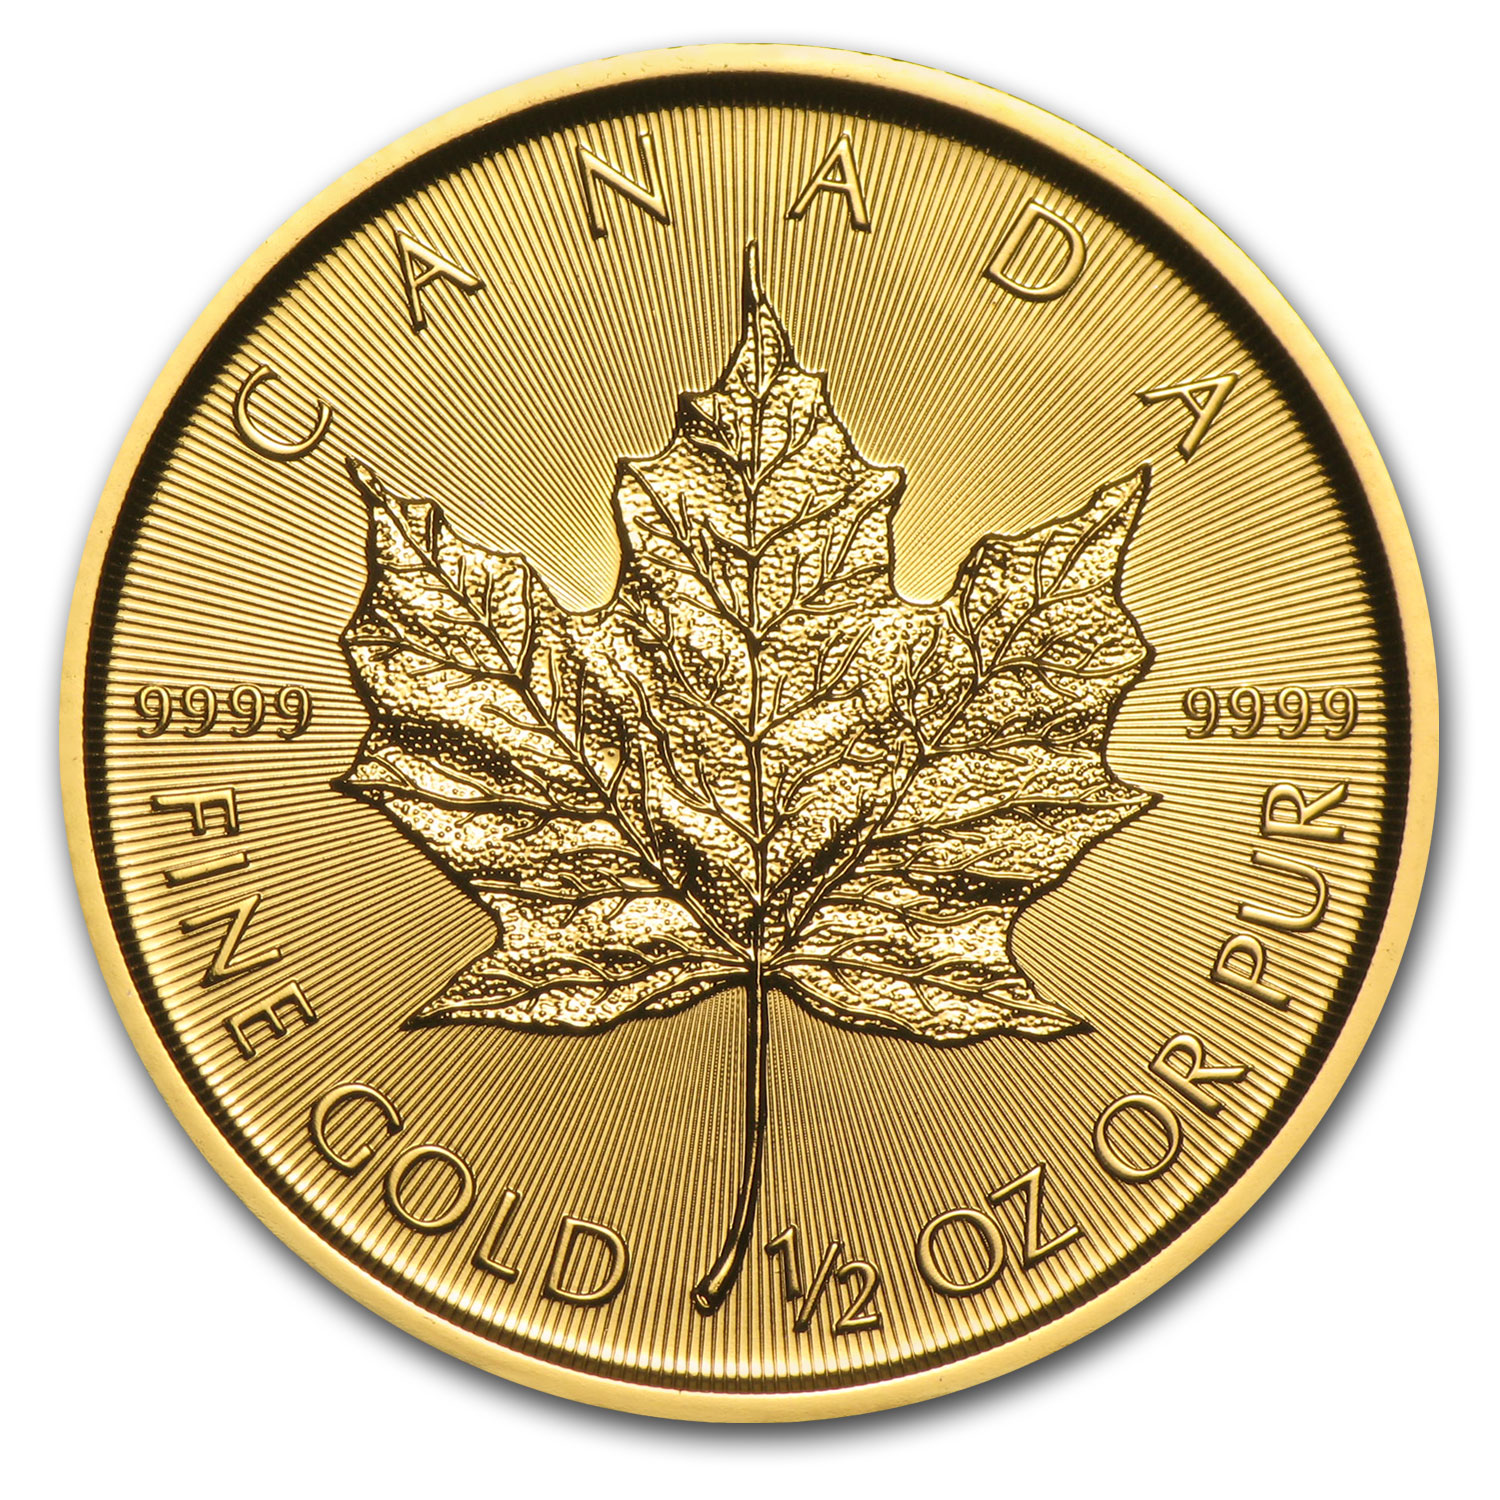 2015 Canada 1/2 oz Gold Maple Leaf BU